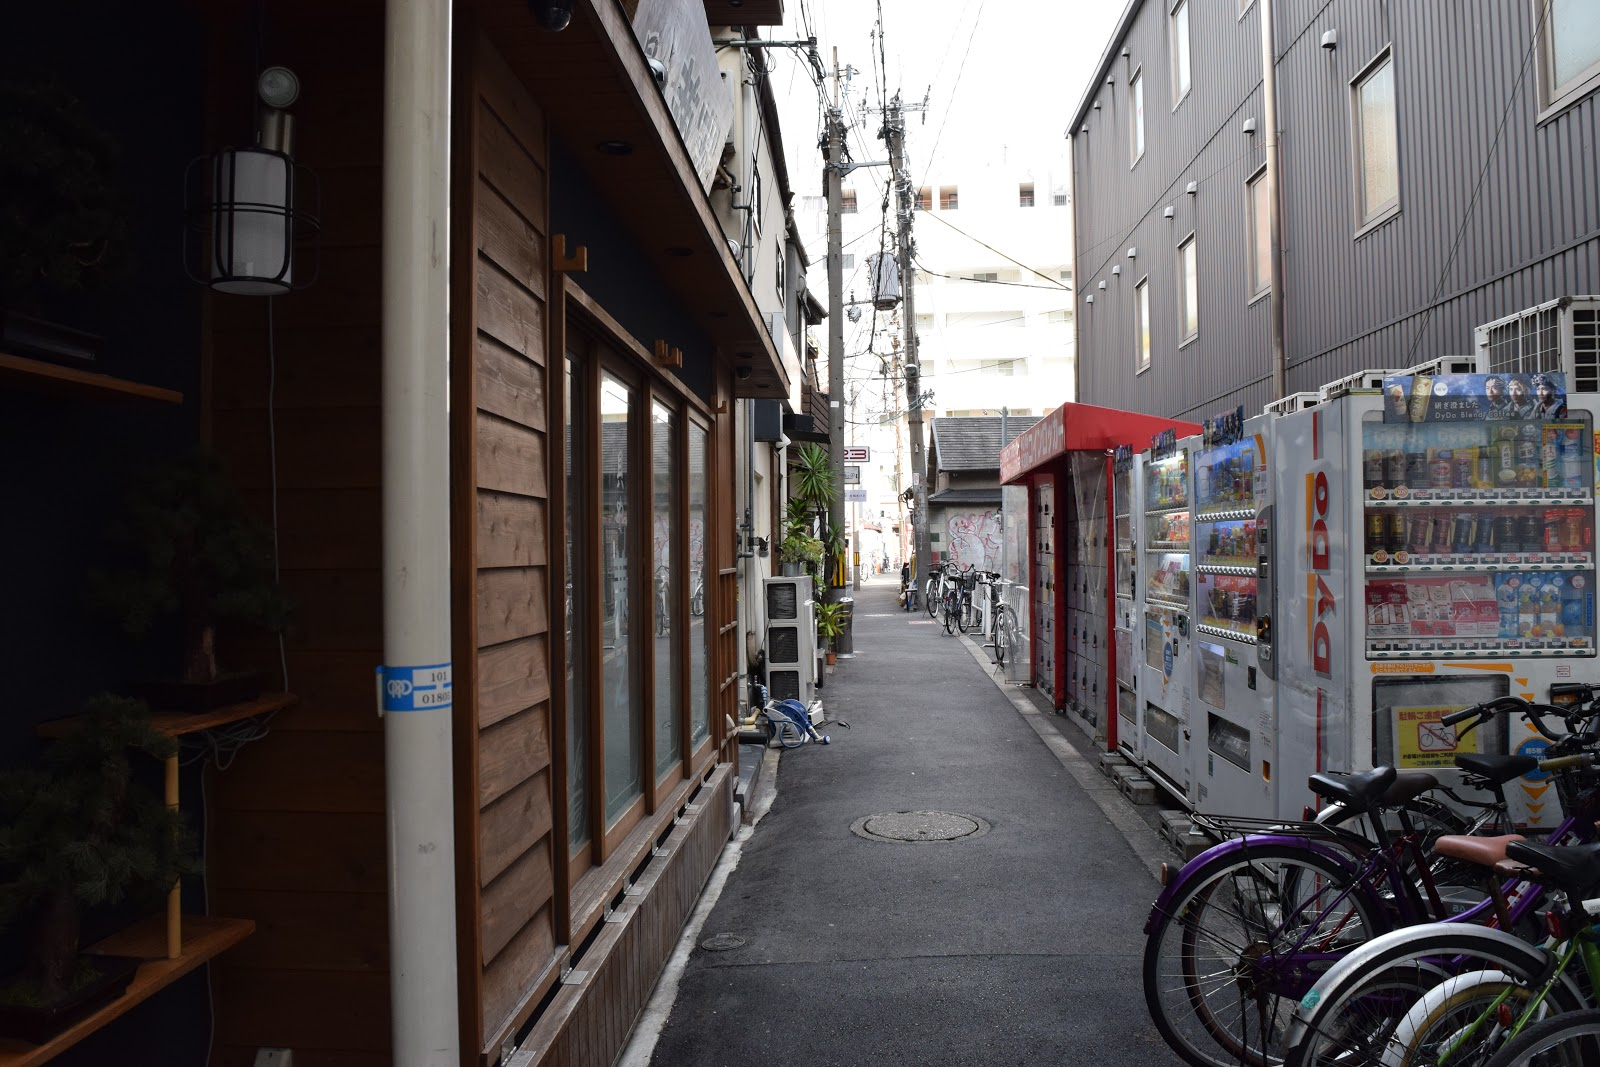 side street in Umeda, Osaka with vending machines and bicycles